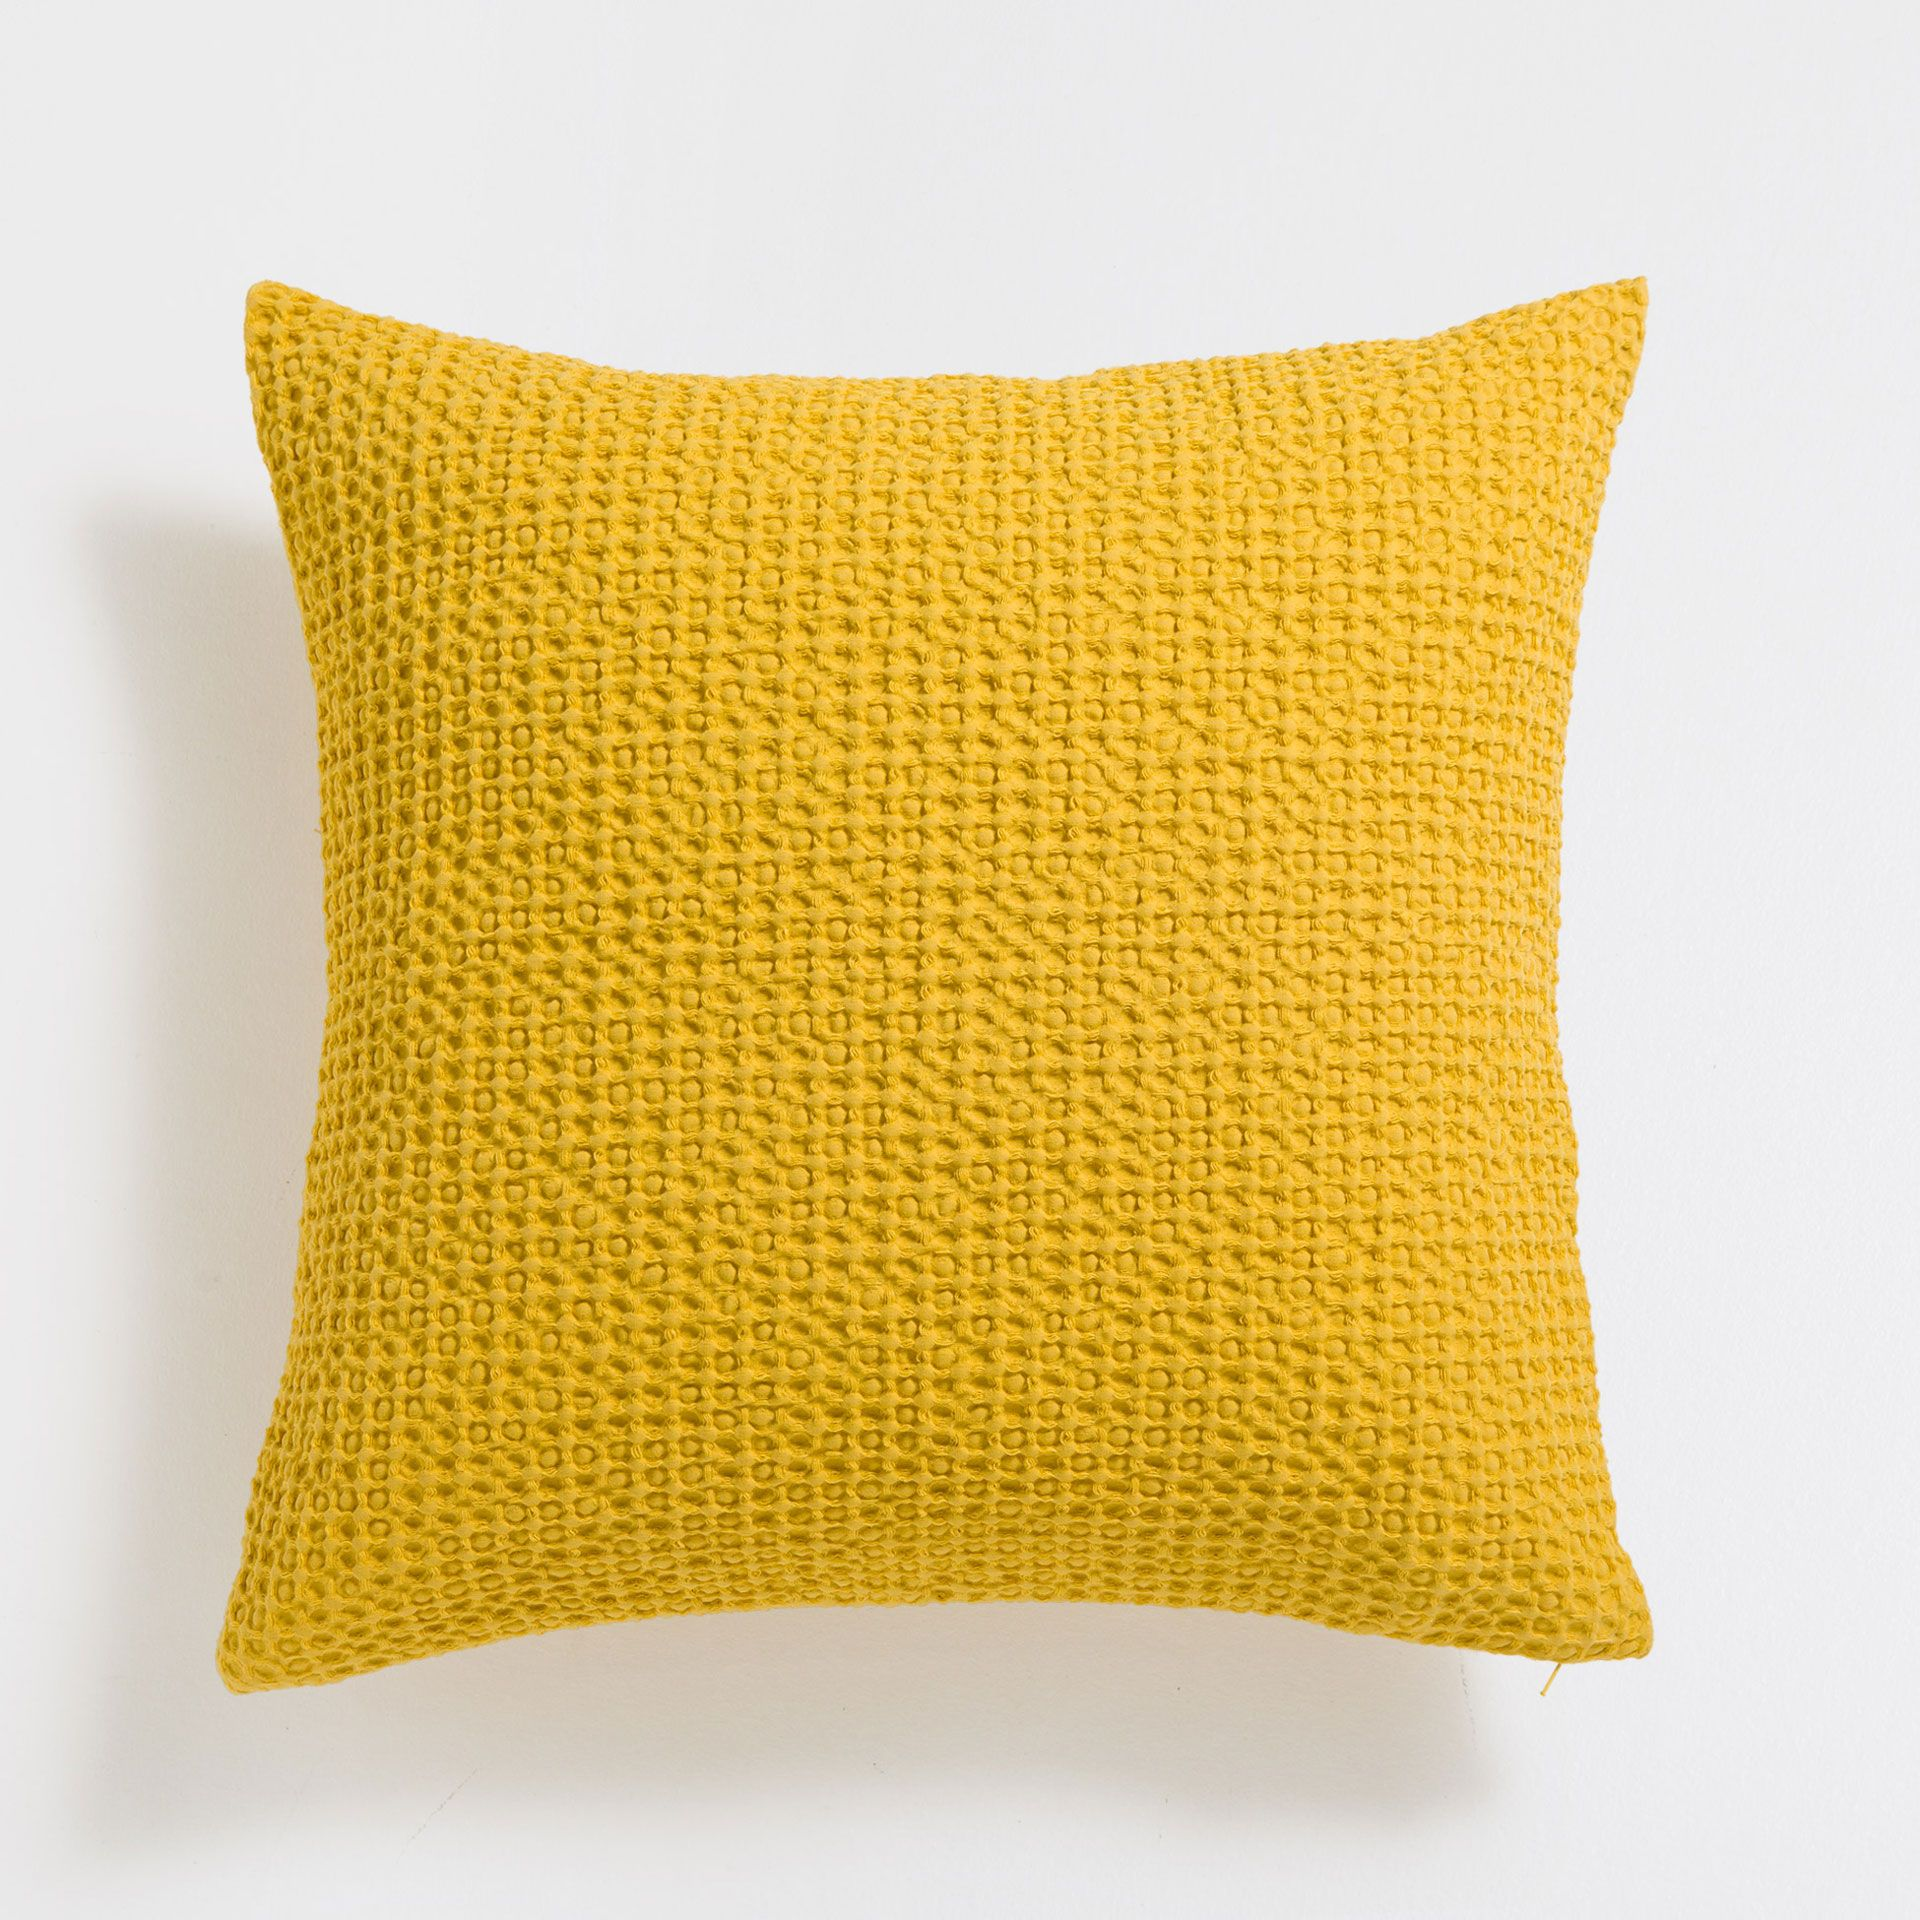 Yellow mesh cotton cushion cover pillows and bedrooms